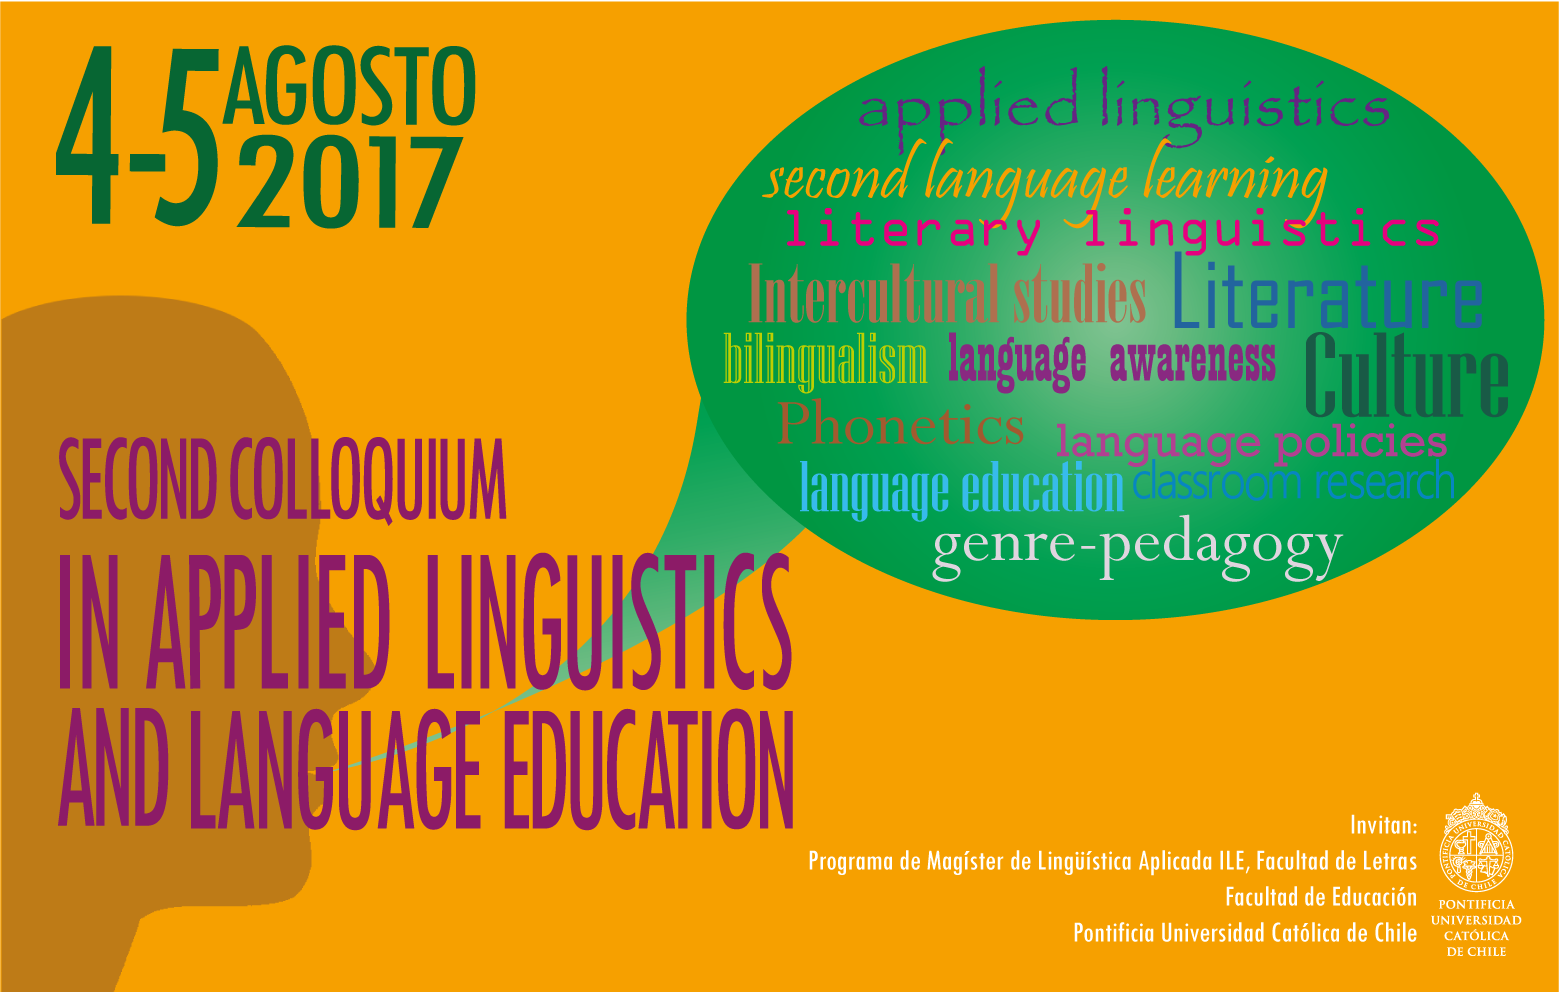 II Colloquium in Applied Linguistics and Language Education